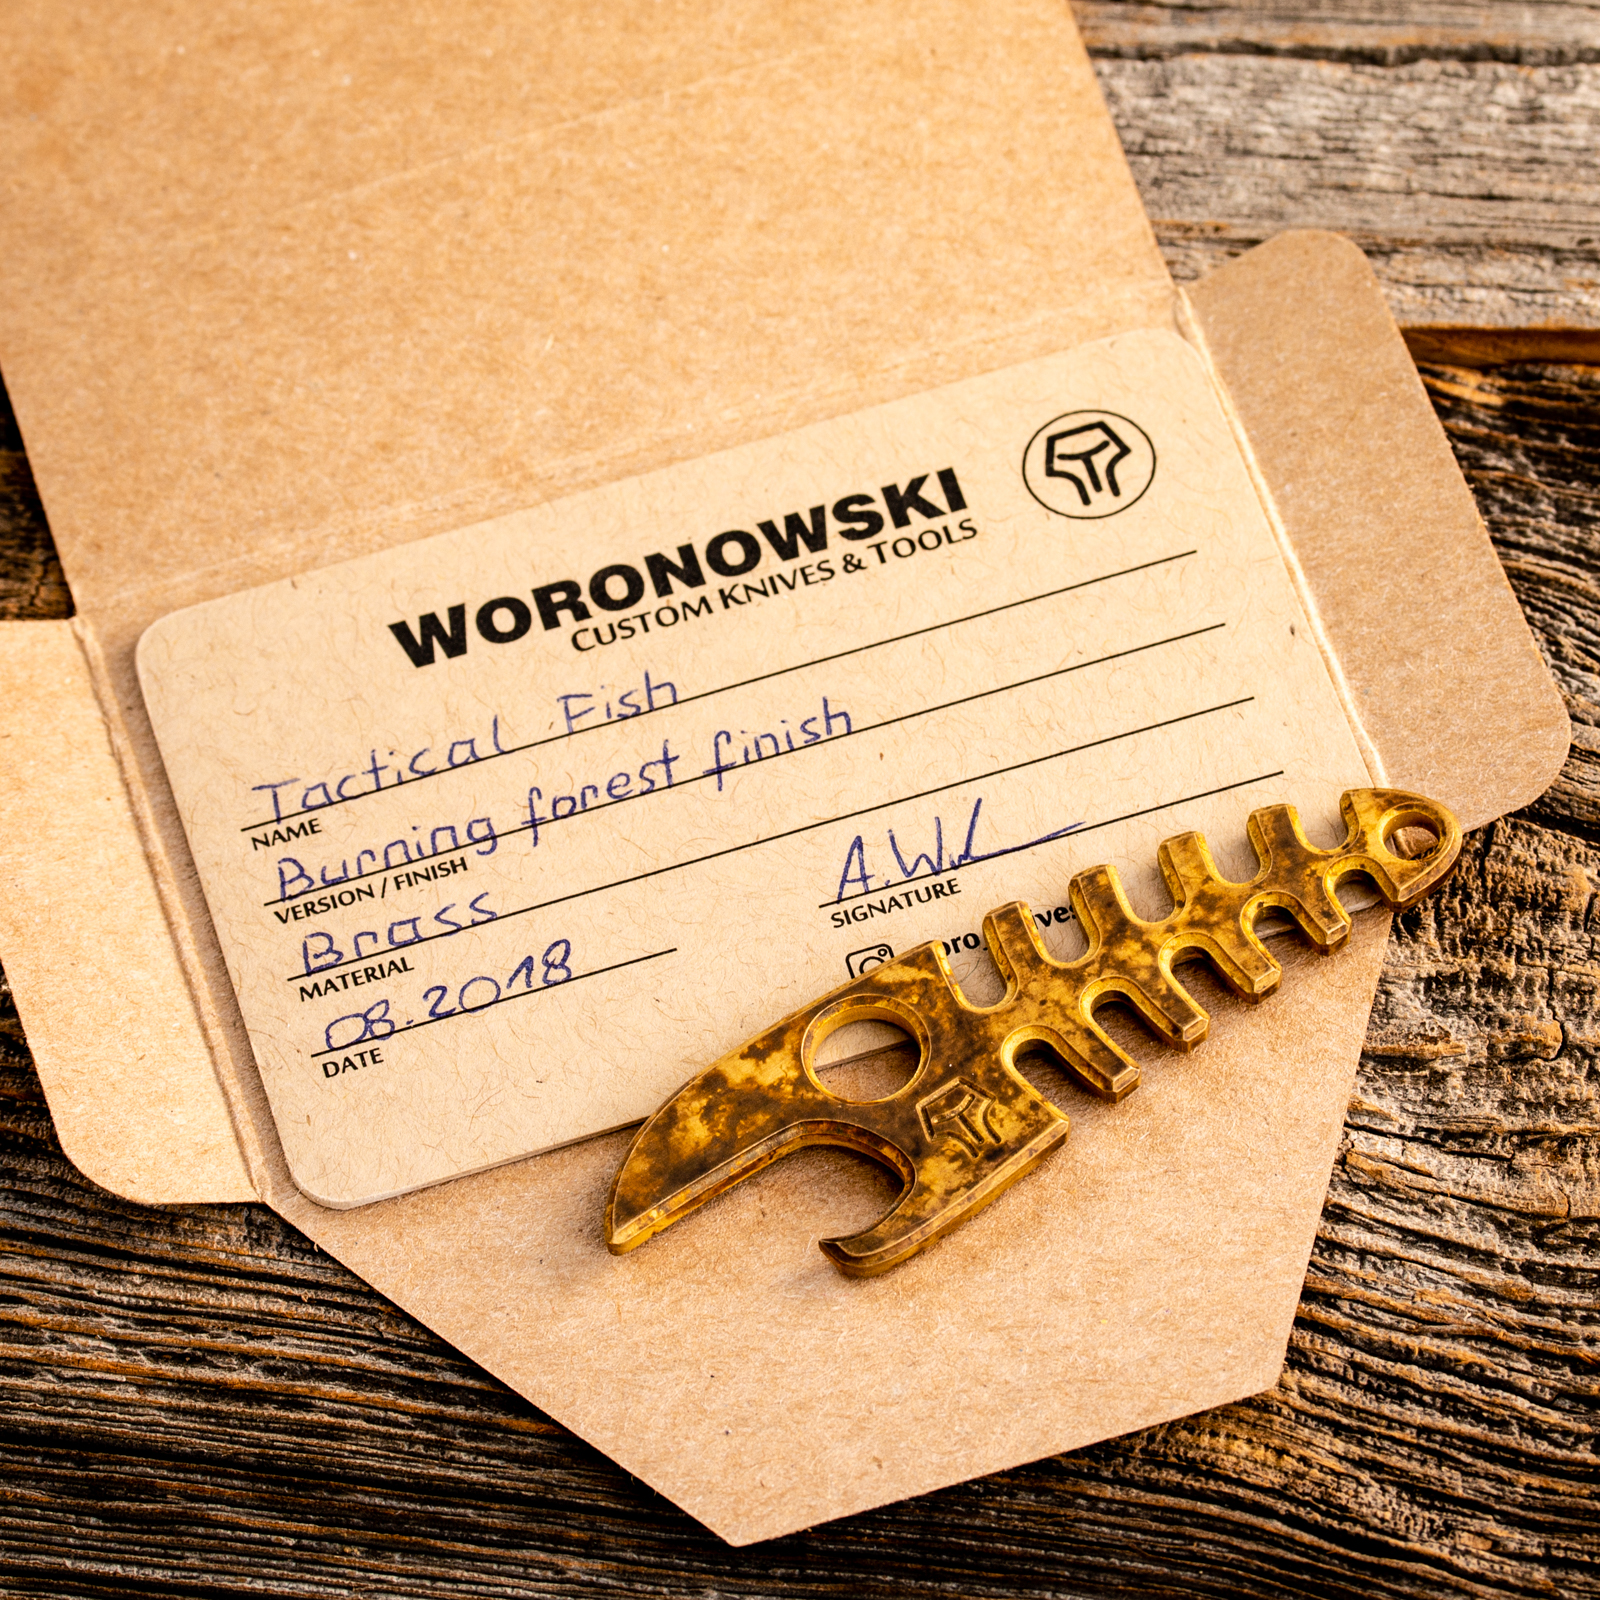 Woronowski Custom Knives & Tools - Tactical Fish